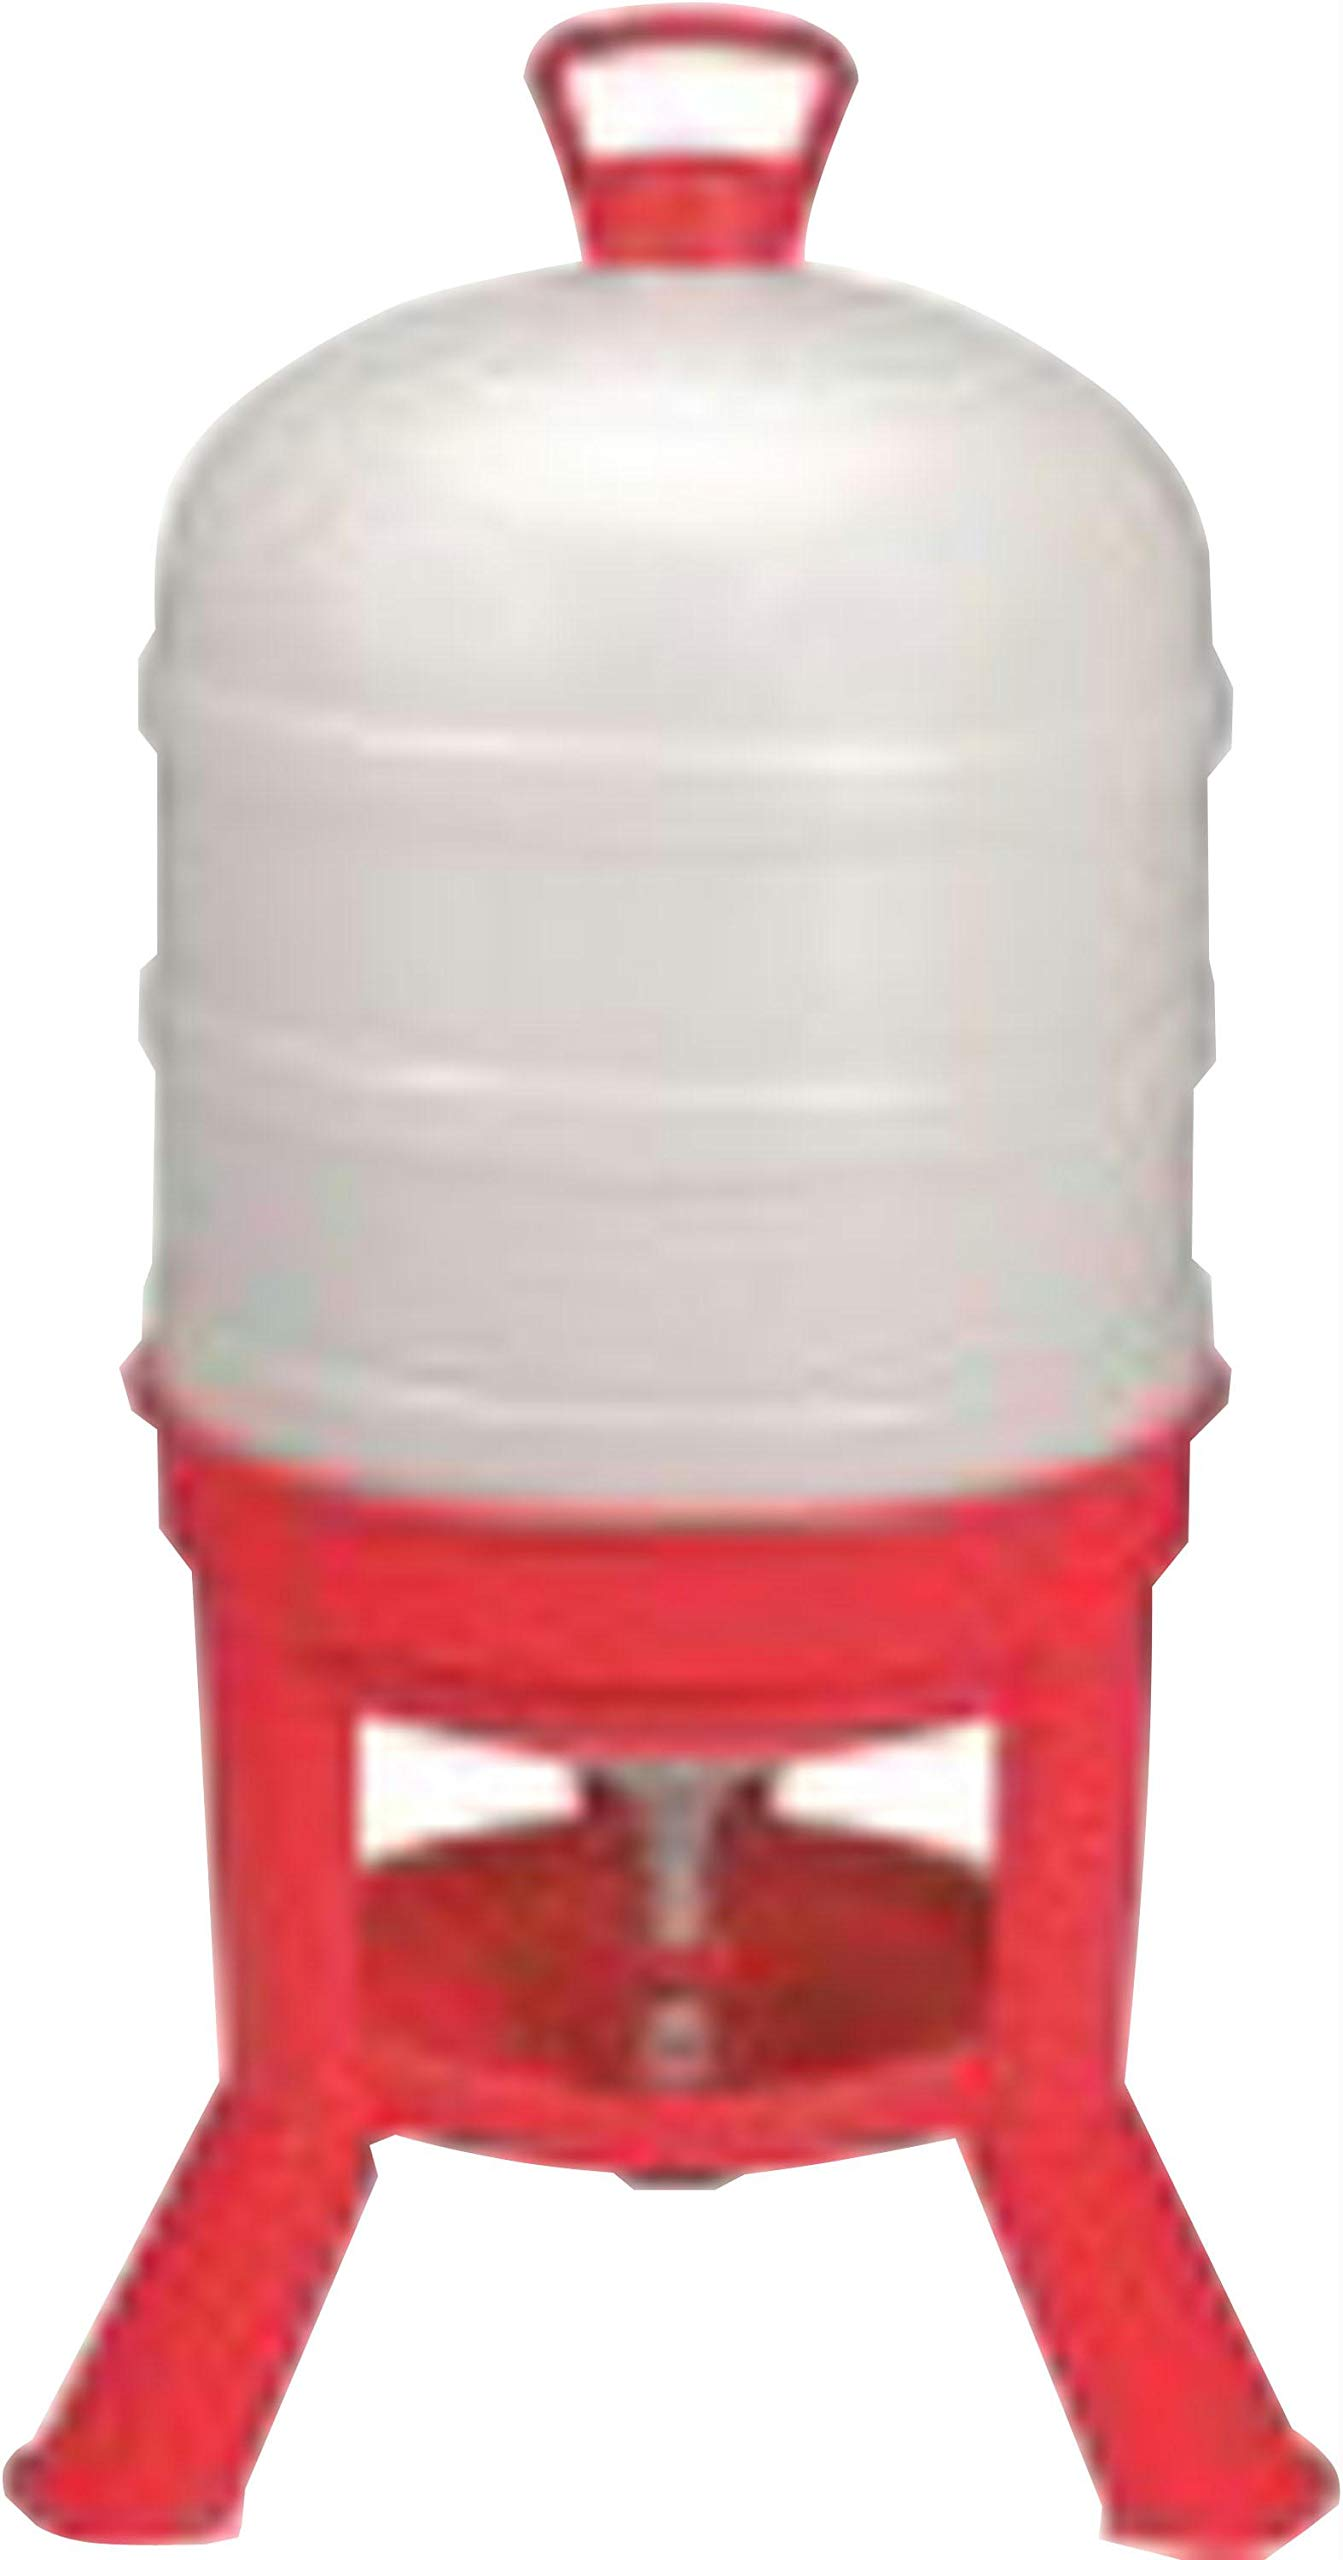 LITTLE GIANT DOMEWTR10 Plastic 10 Gallon Dome Poultry Waterer by LITTLE GIANT